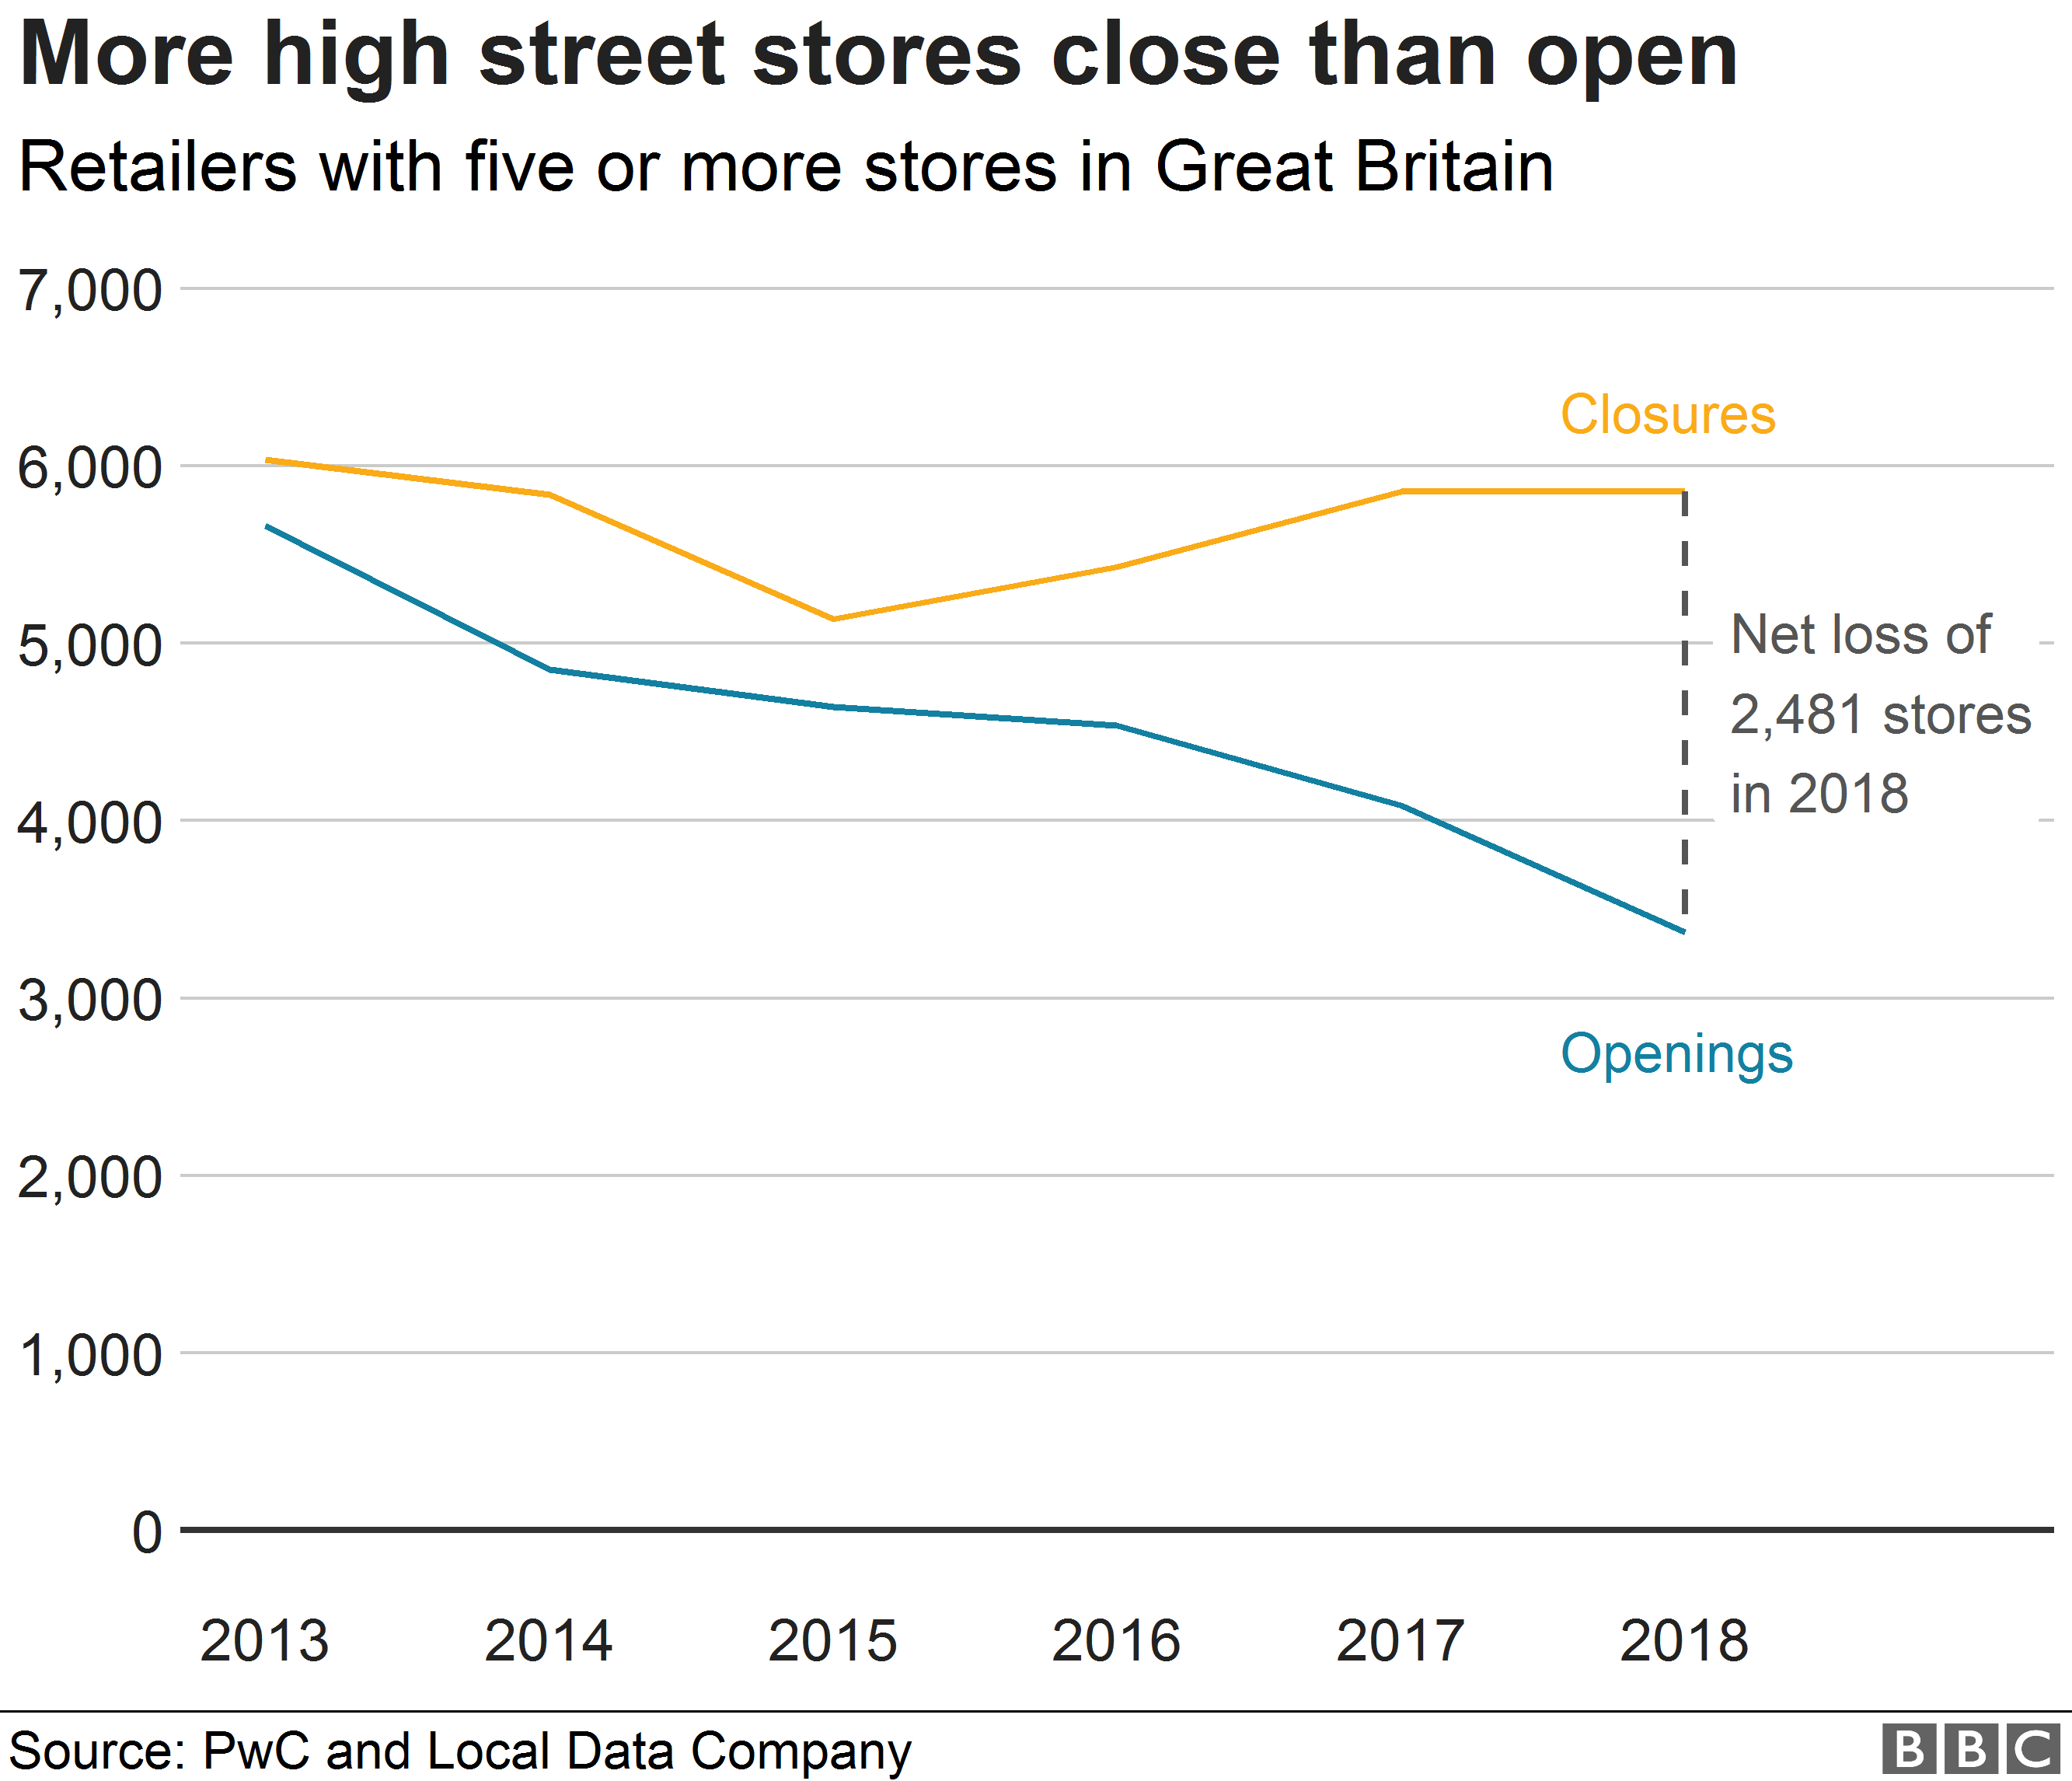 A chart showing high street store closures since 2013